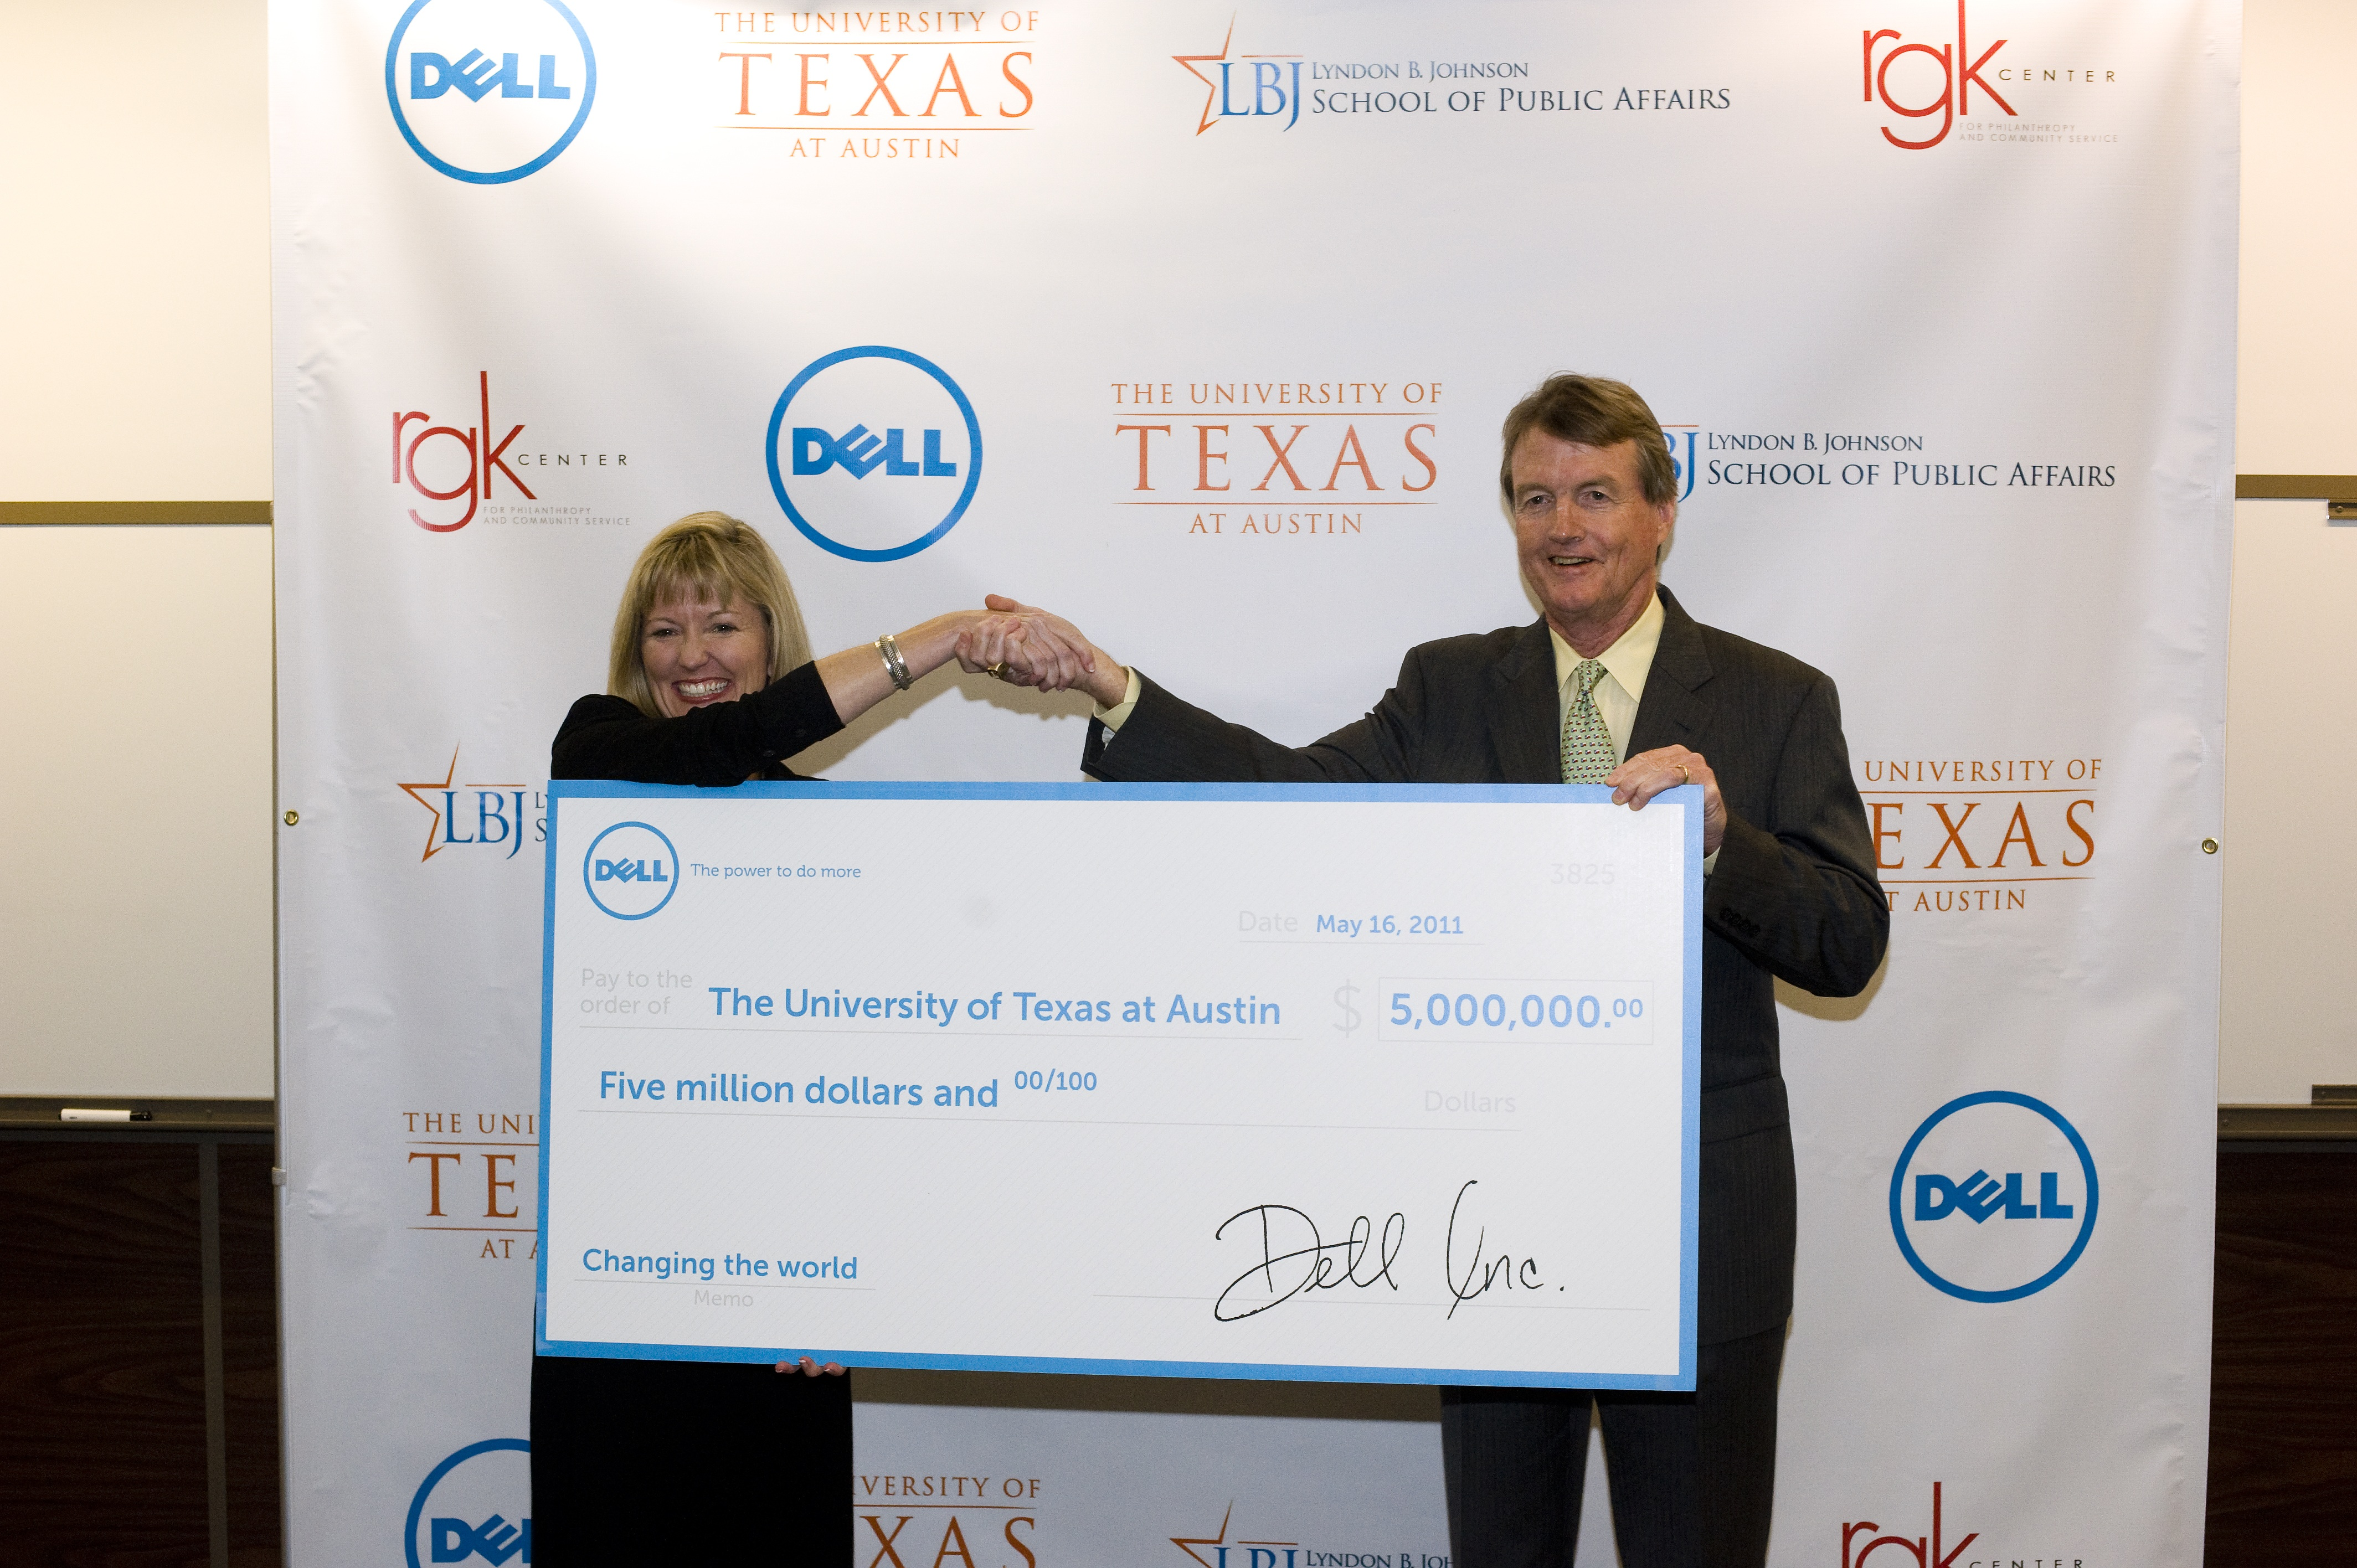 Karen Quintos, CMO, Dell and President William Powers